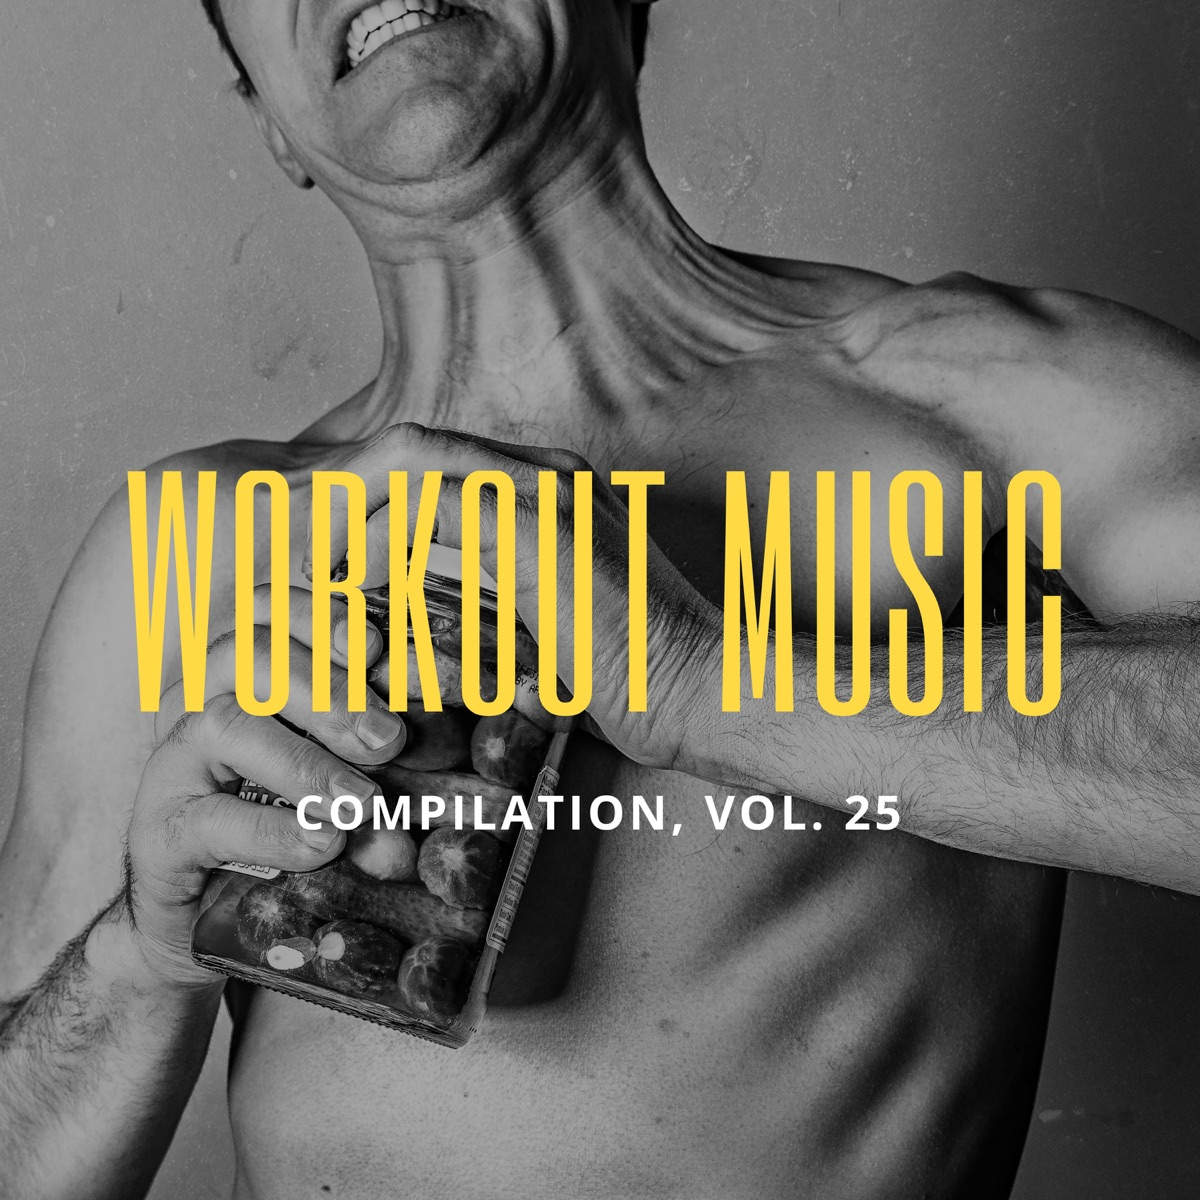 Workout Music, Vol 25 Album Cover by Various Artists